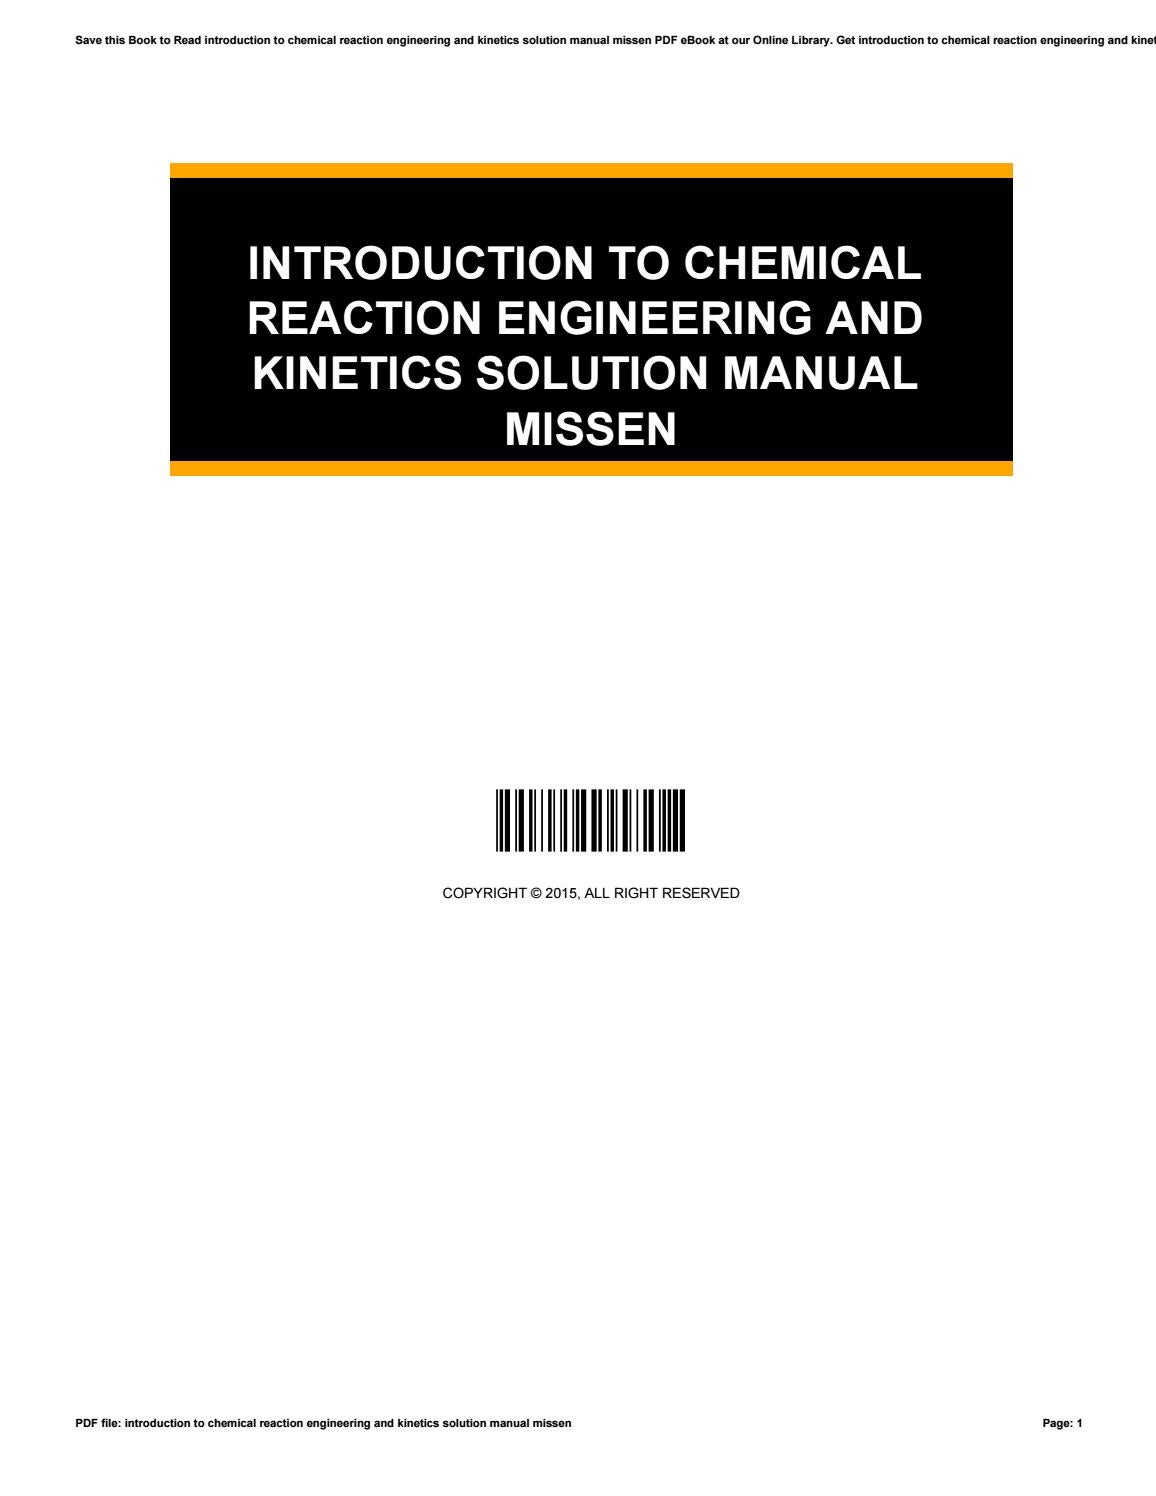 chemical kinetics and reaction dynamics solution manual pdf